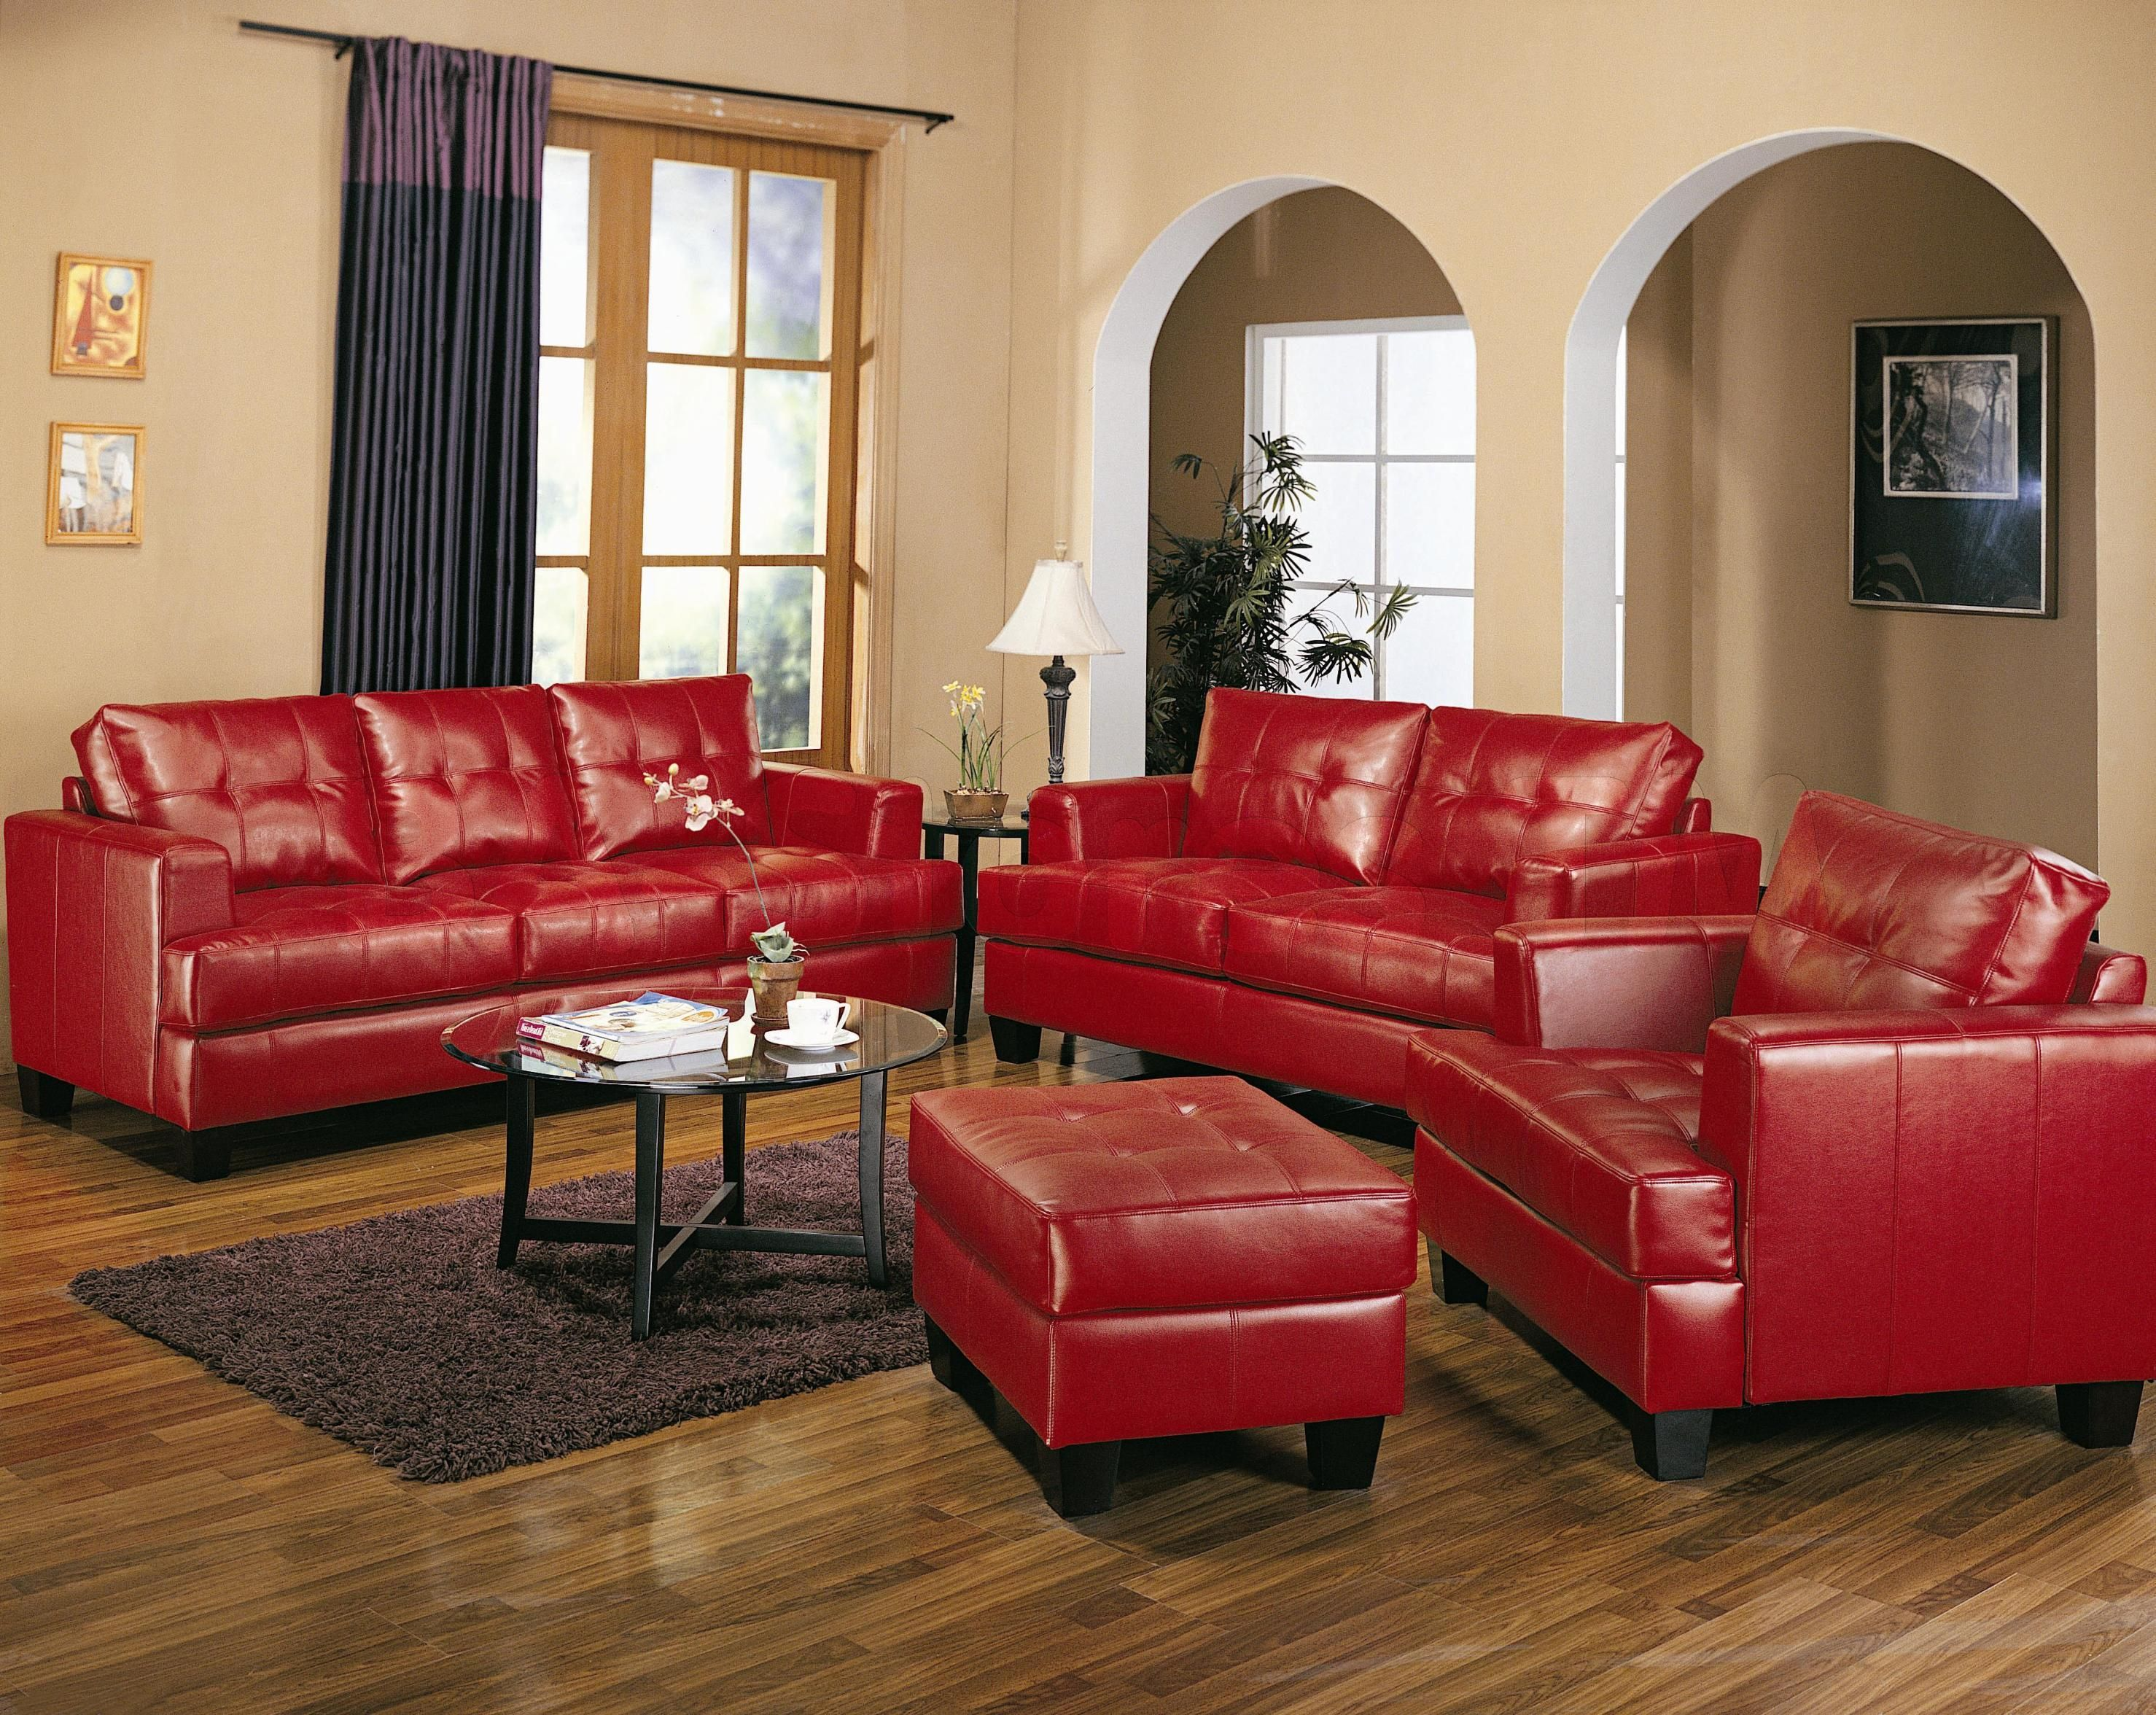 Leather Living Room Sets On Rooms With A Red Leather Couch Google Search Mamas Living Room